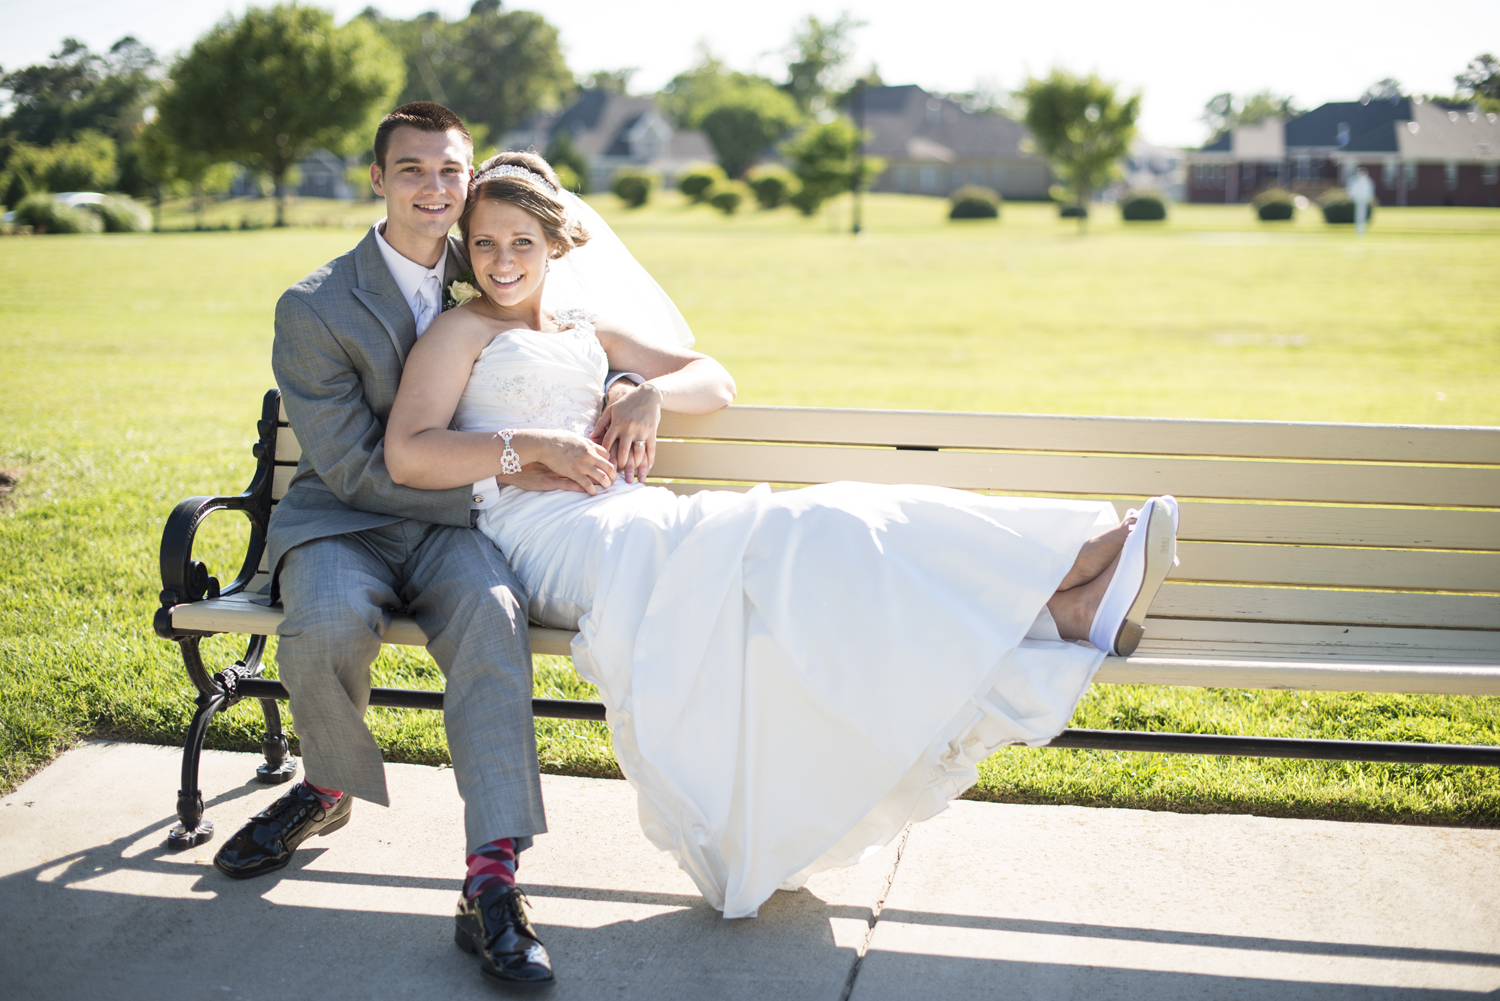 Bride and groom portrait on a bench by the water in Suffolk, Virginia